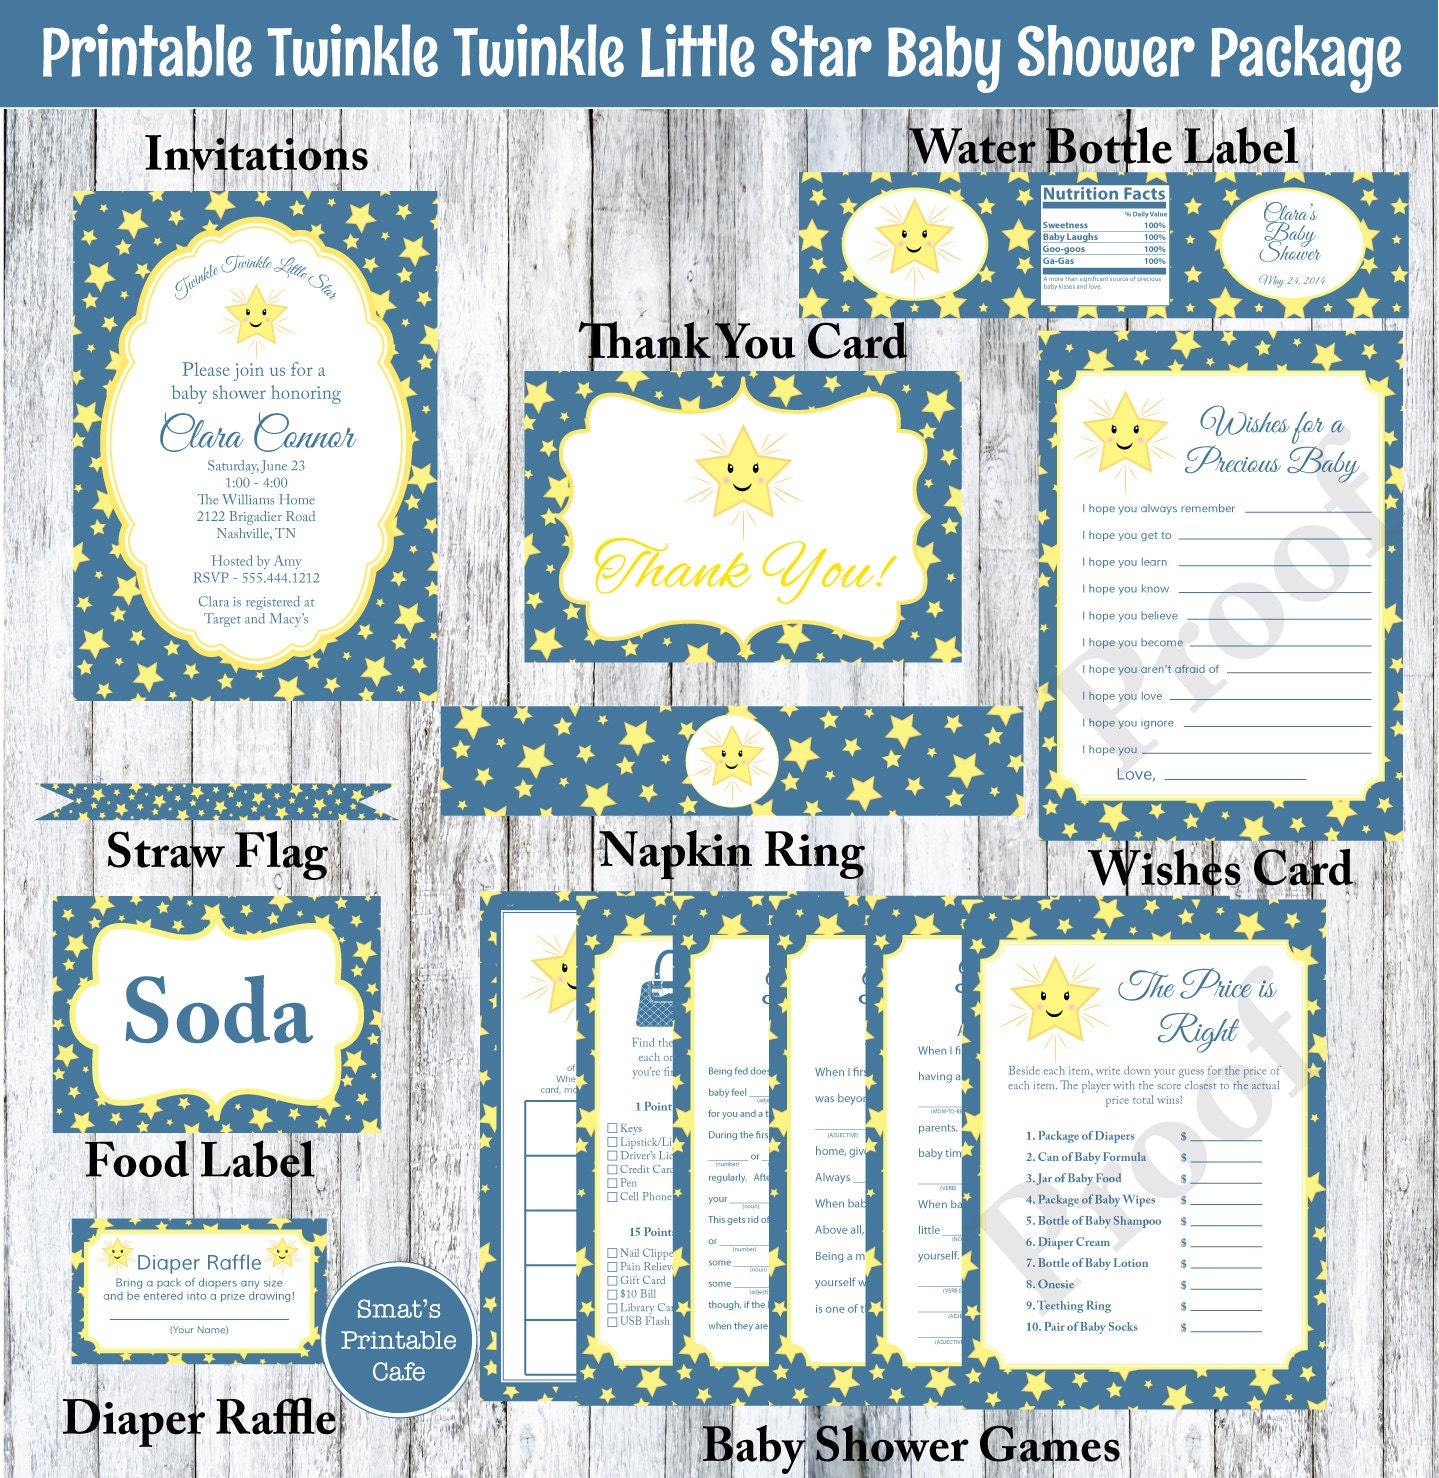 twinkle twinkle little star baby shower package printable